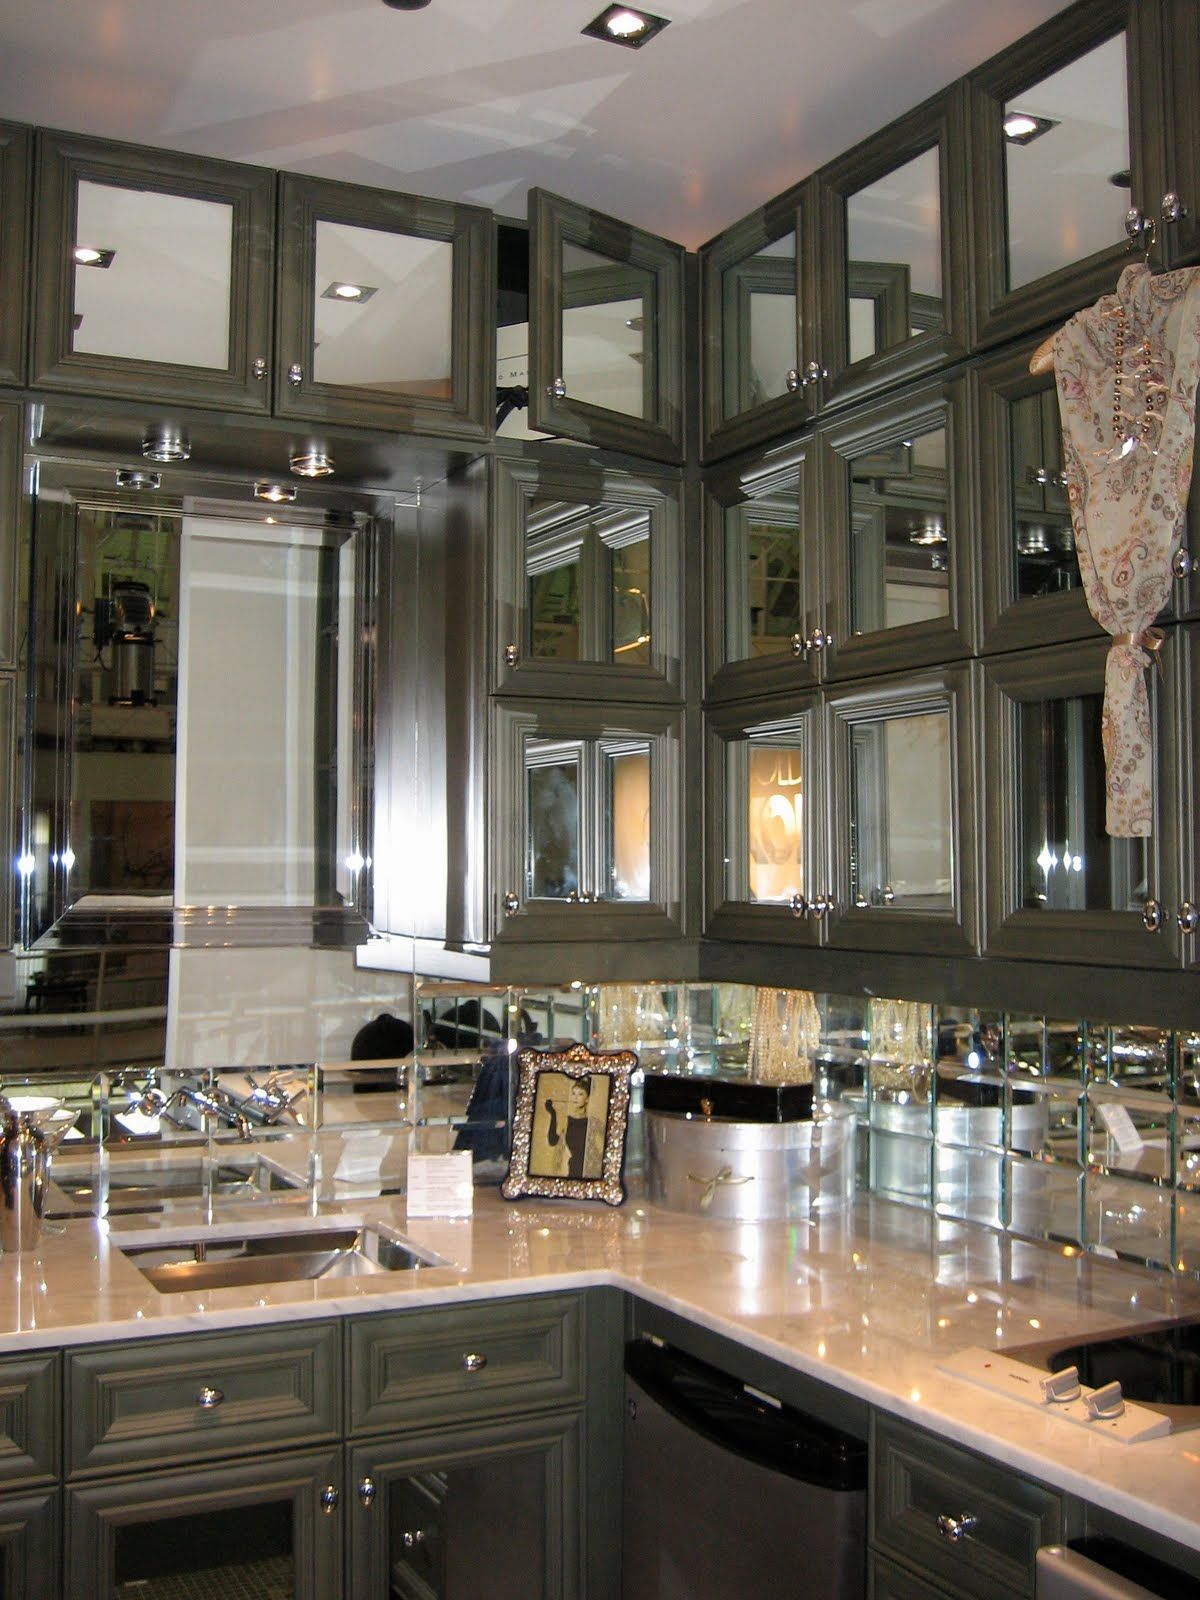 Hello Lover Kohler Design Center Mirrored Kitchen Cabinet